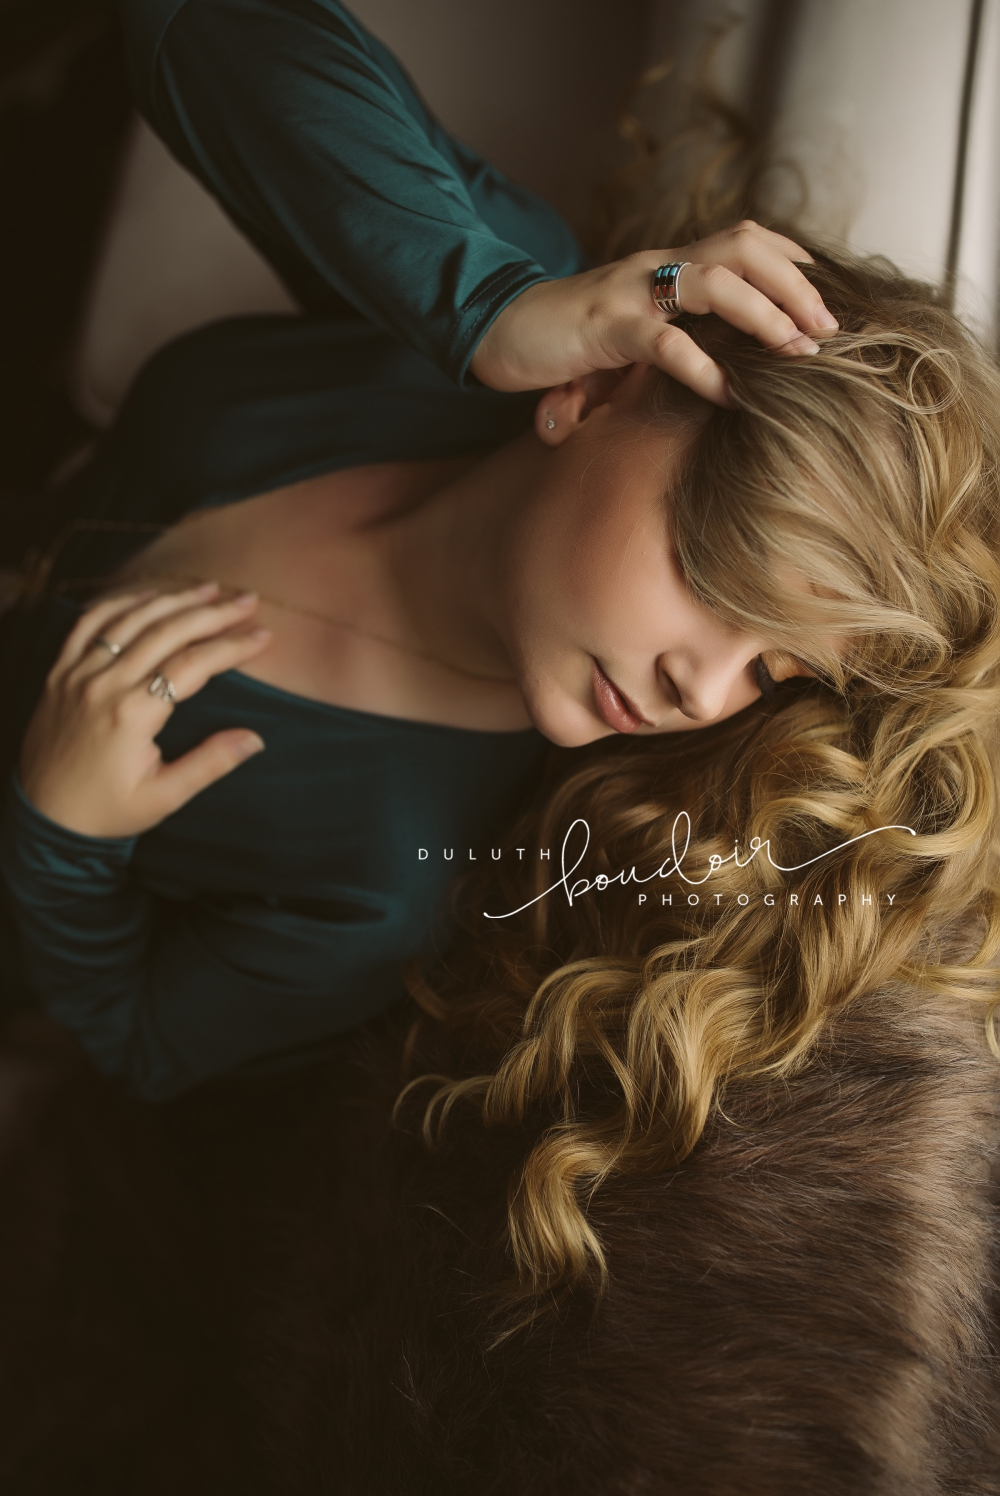 Amy session experience with Duluth Boudoir Photography by Mad Chicken Studio #duluthboudoirphotography #duluthboudoir #madchickenstudio #madchickenstudioboudoir #boudoirphotography